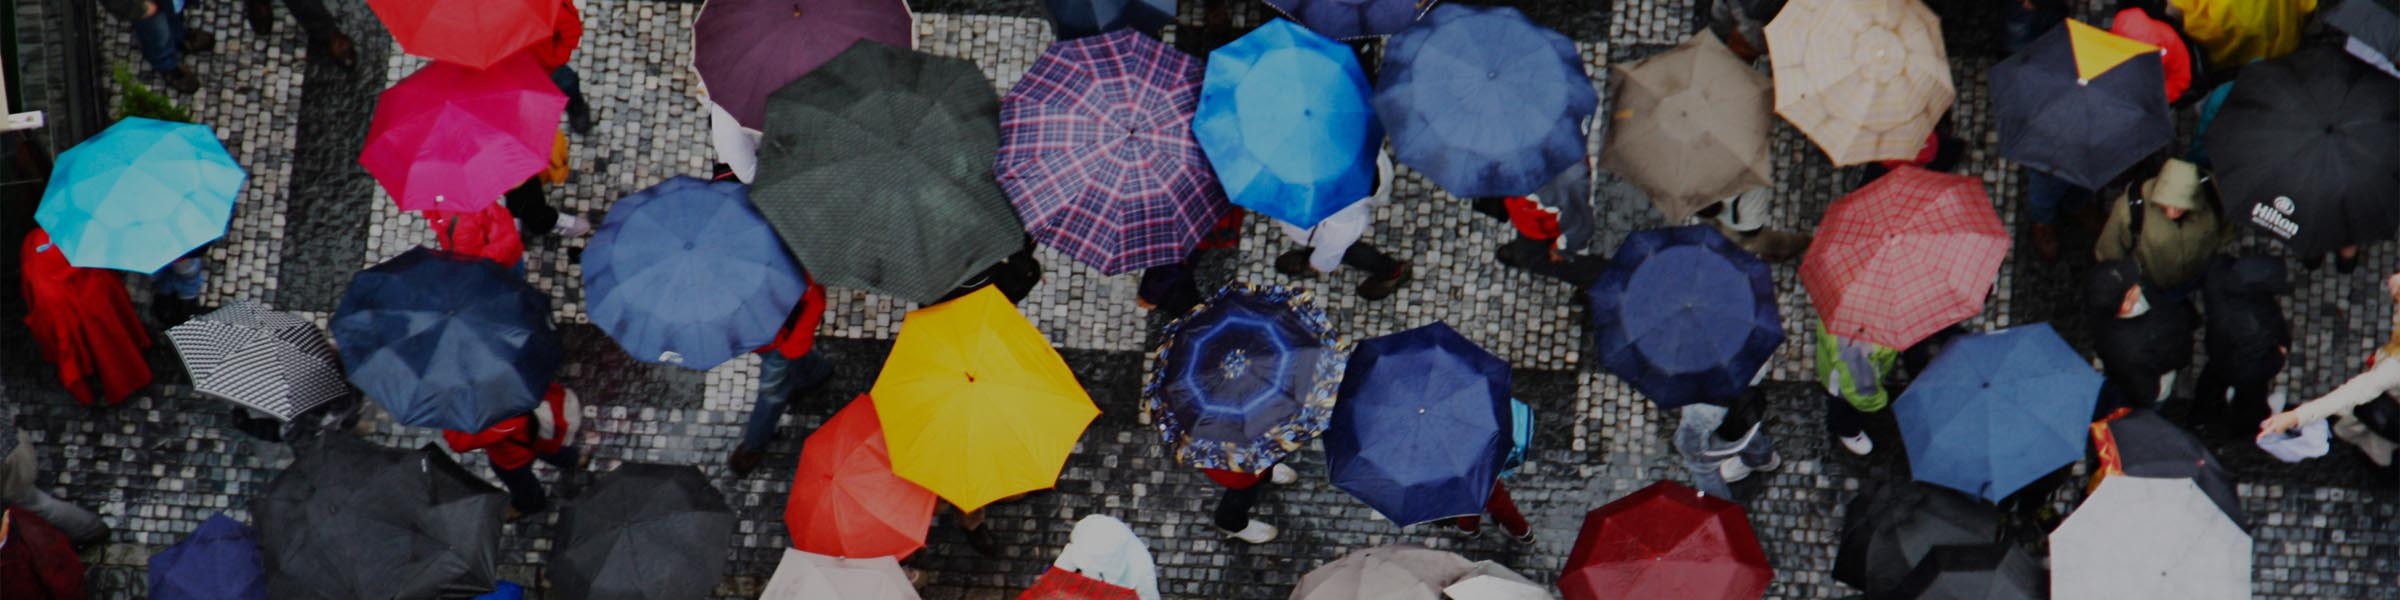 617926557_Macro_People_Standing_Umbrellas__Street_Monsoon